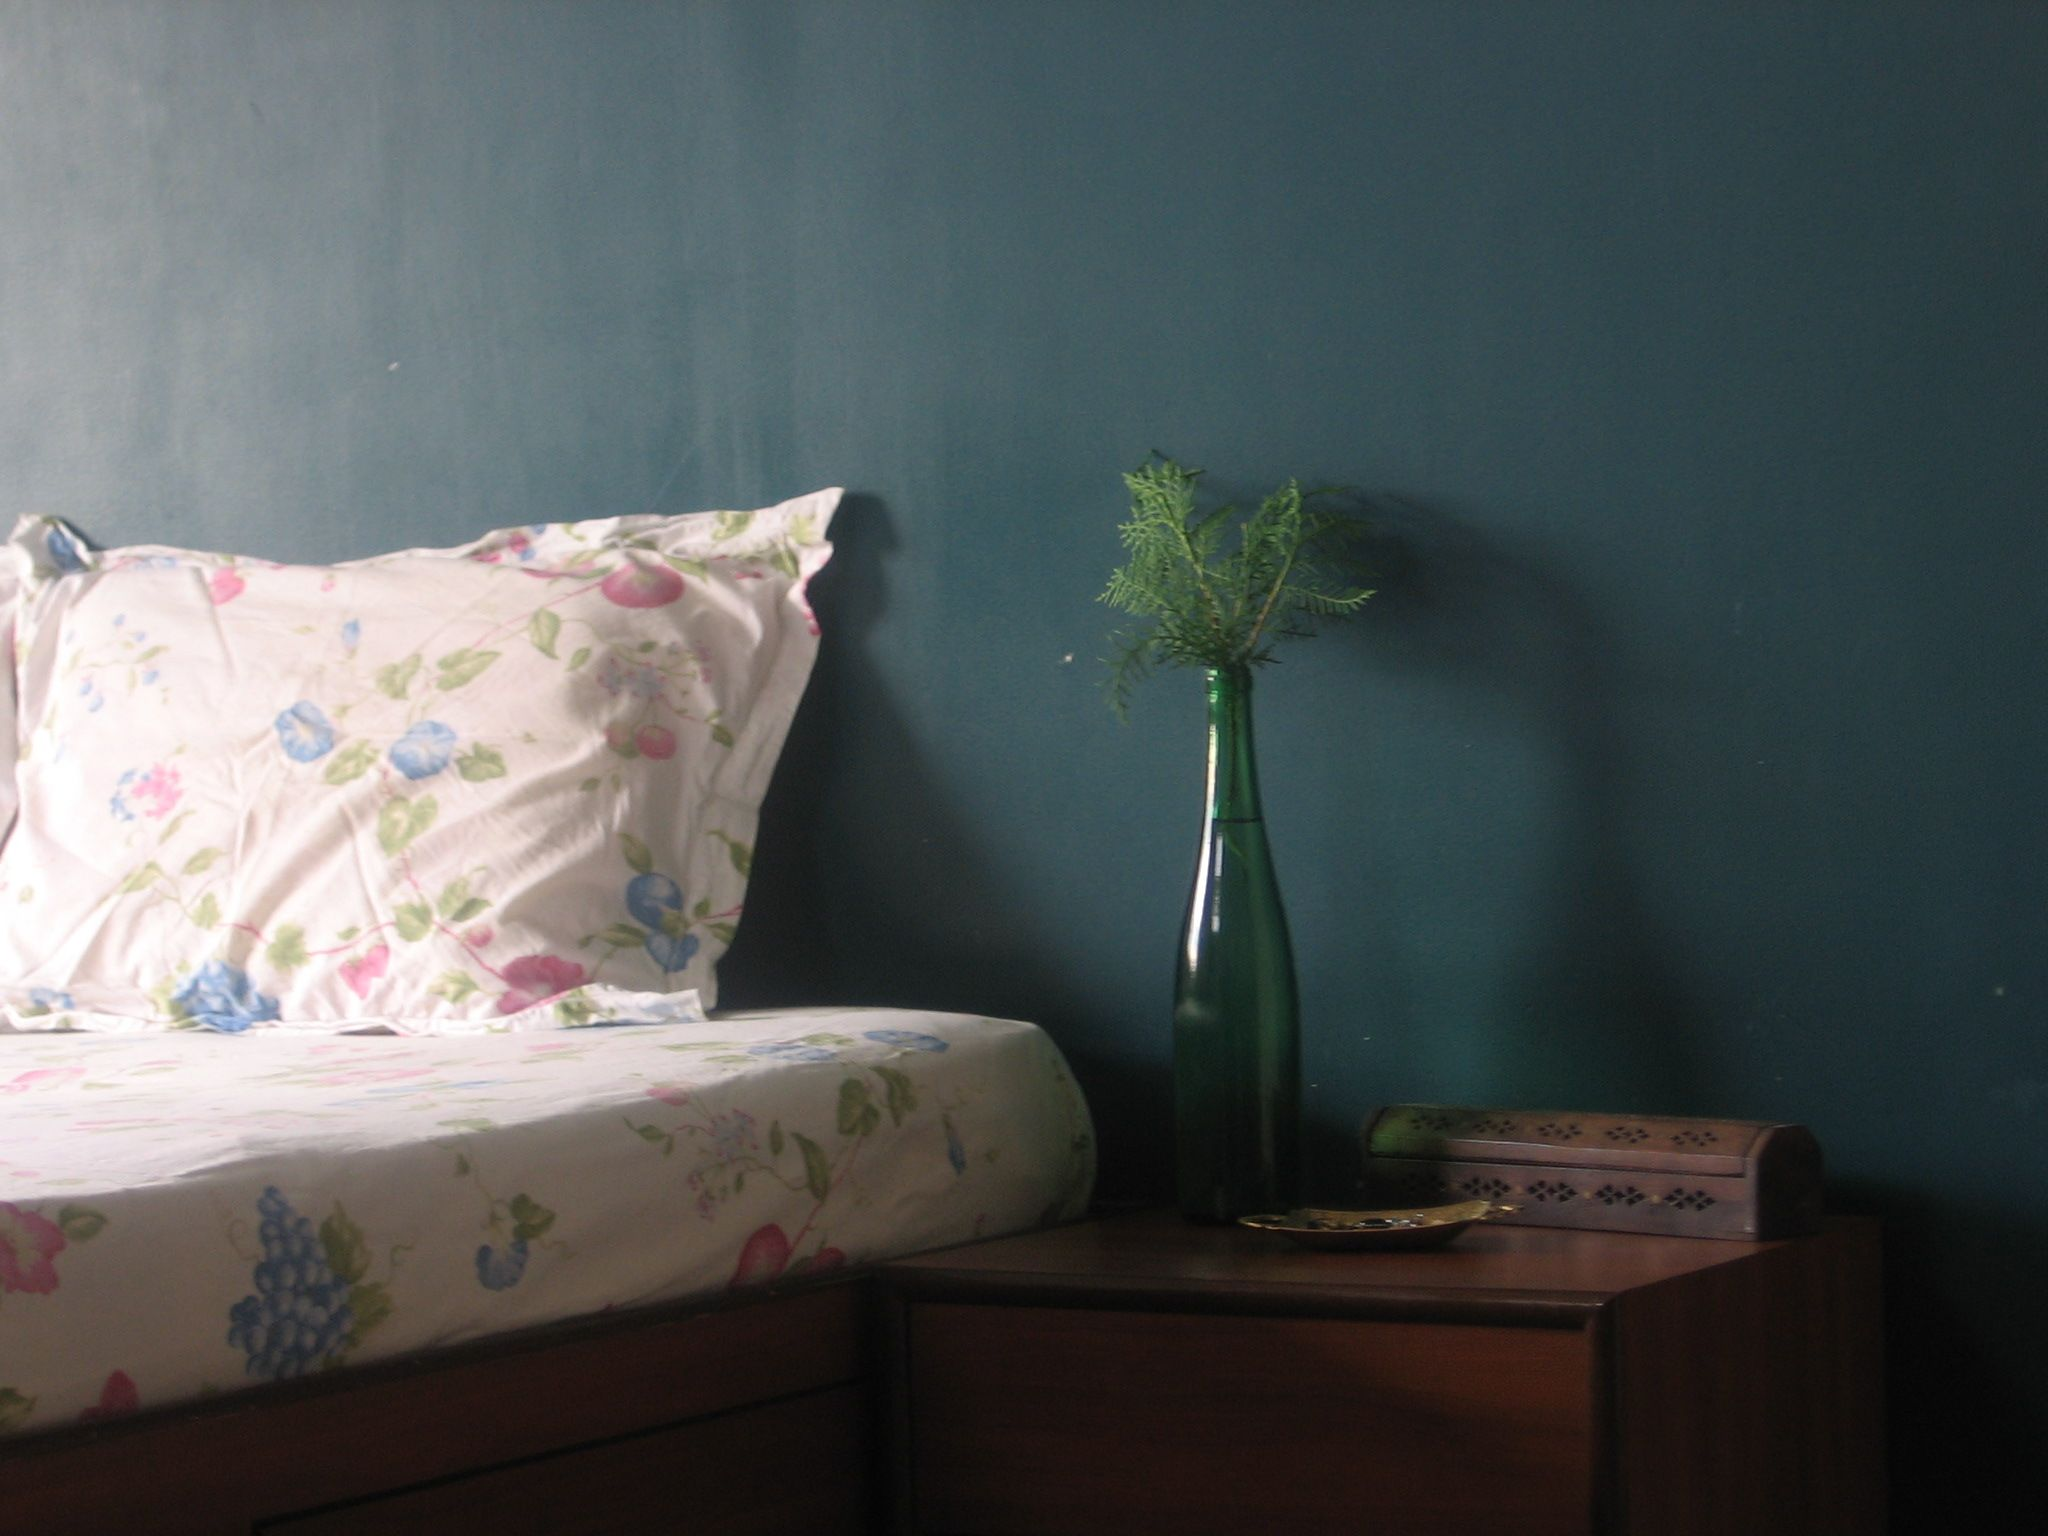 my home-my haven -I miss my bedroom teal wall